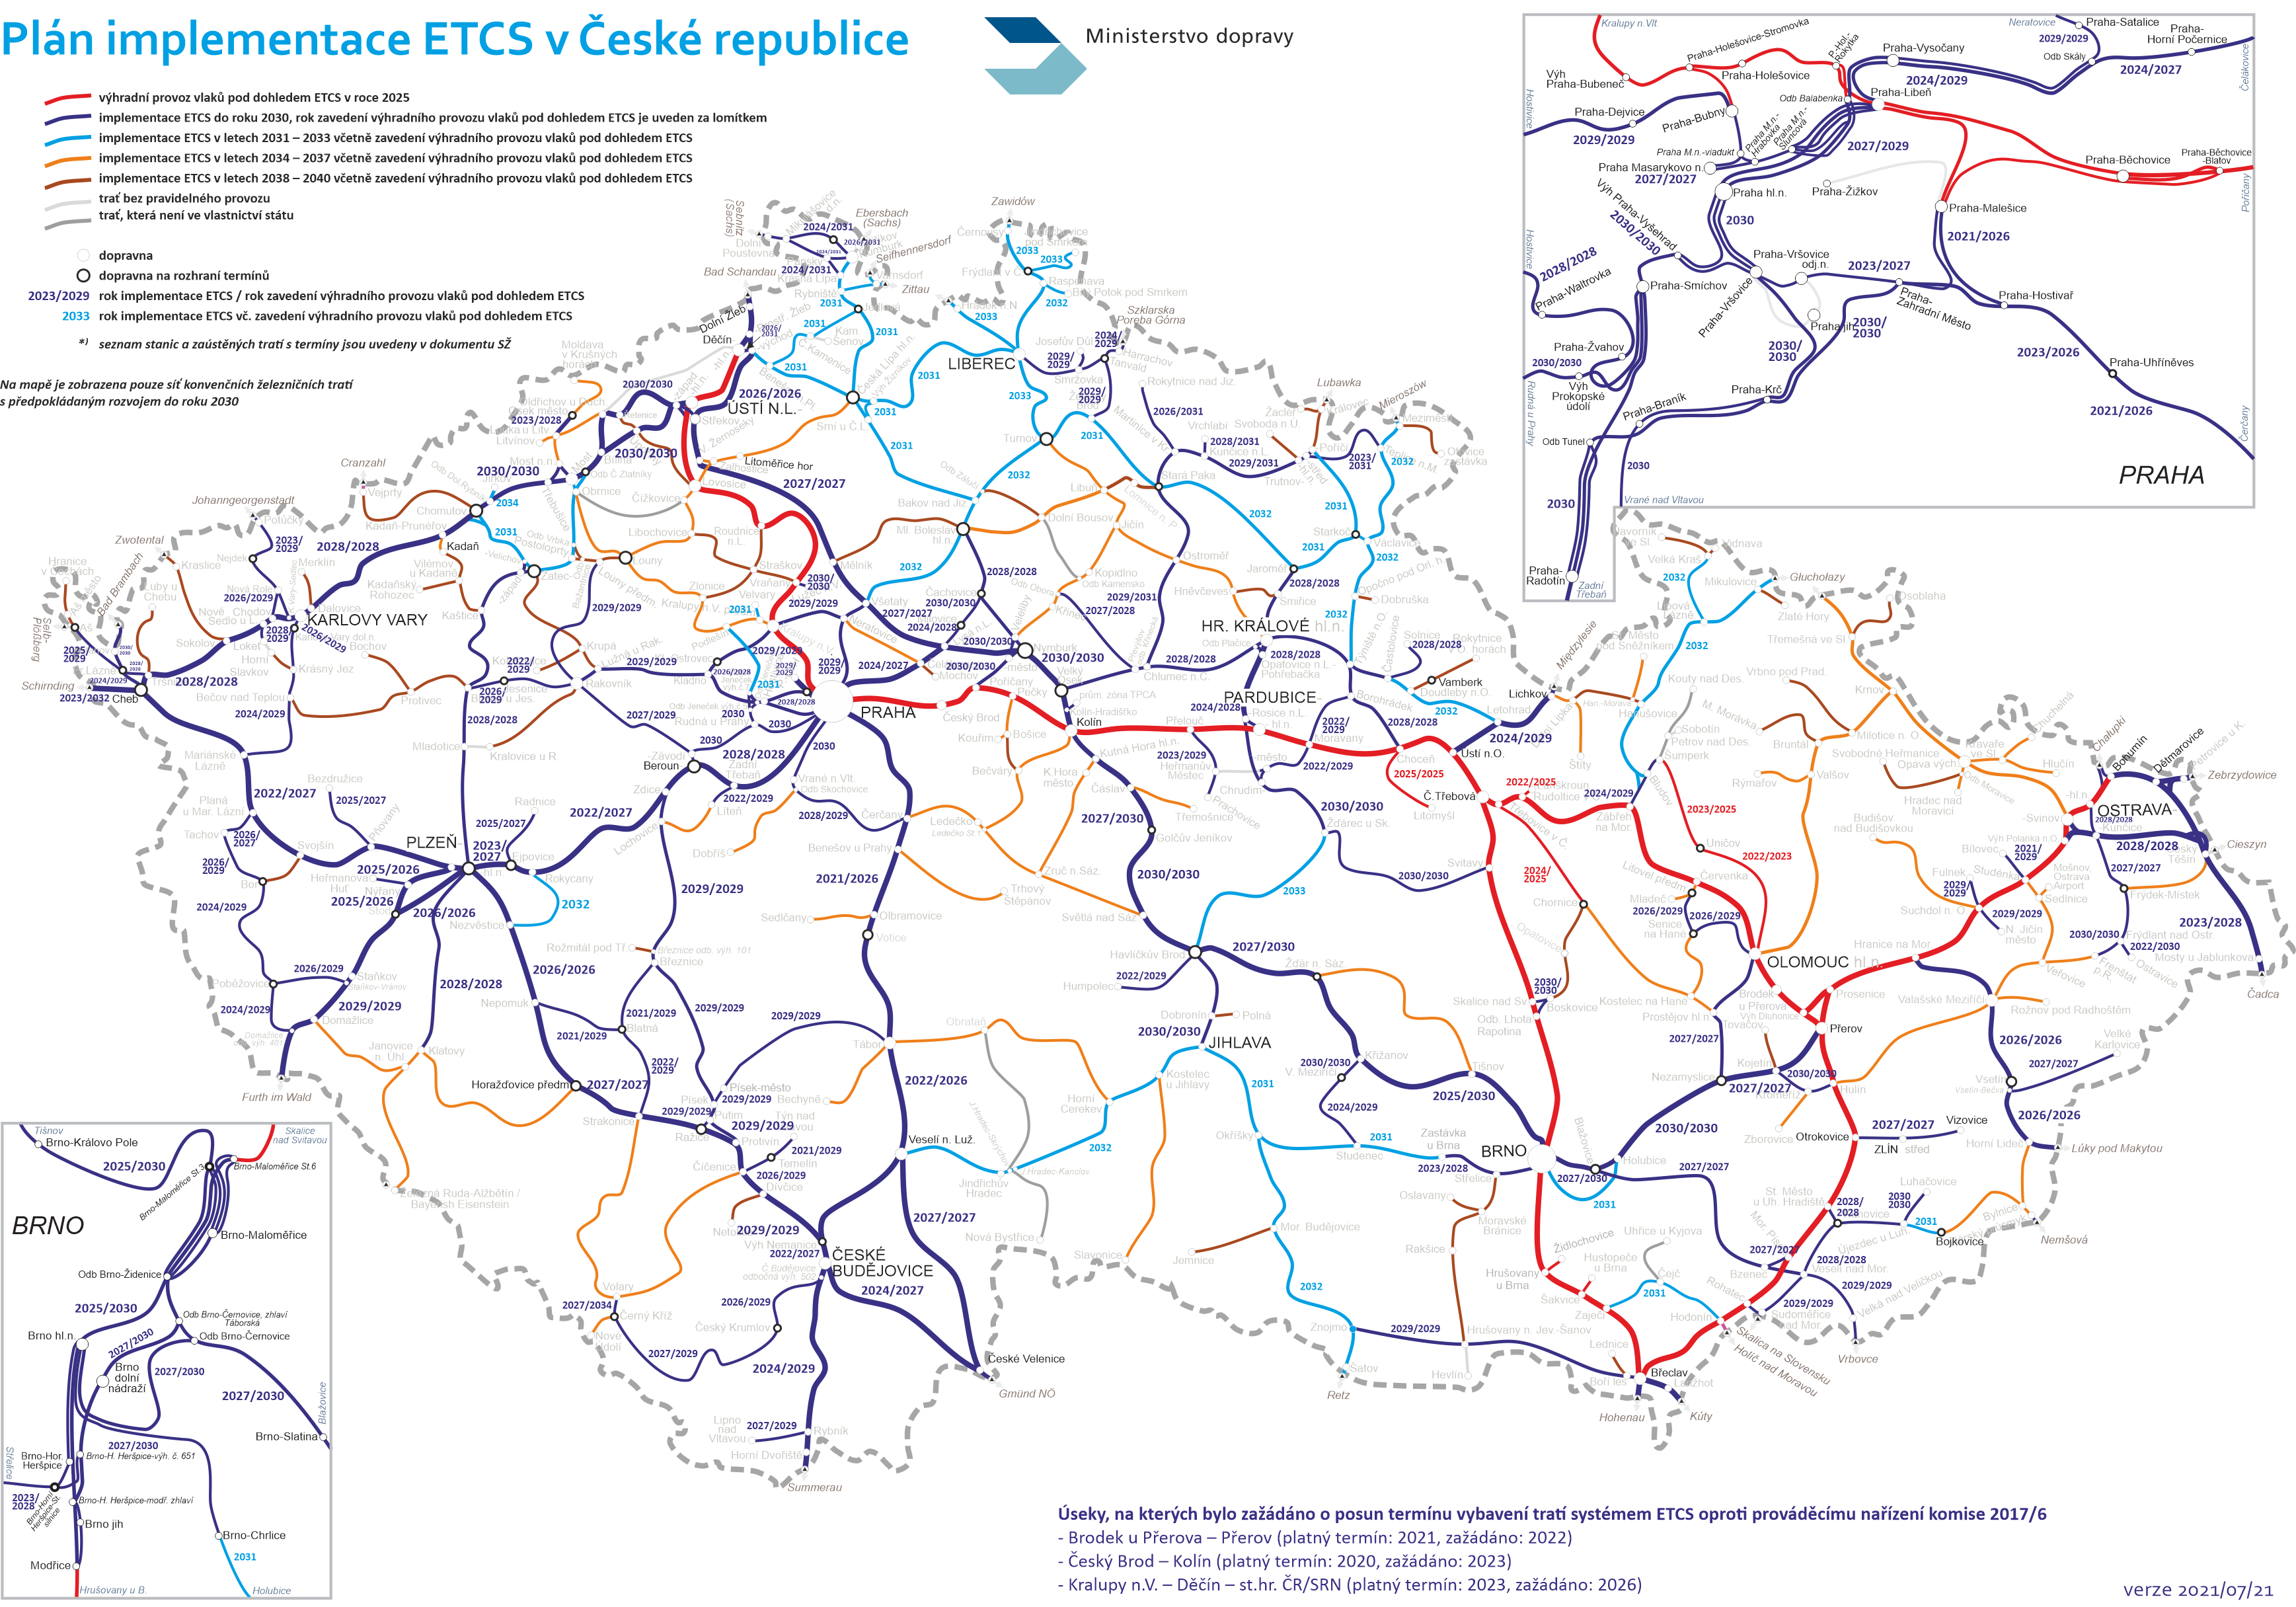 Vyhled-implementace-ETCS-A-B-C-D-VP-2021-07-21.png